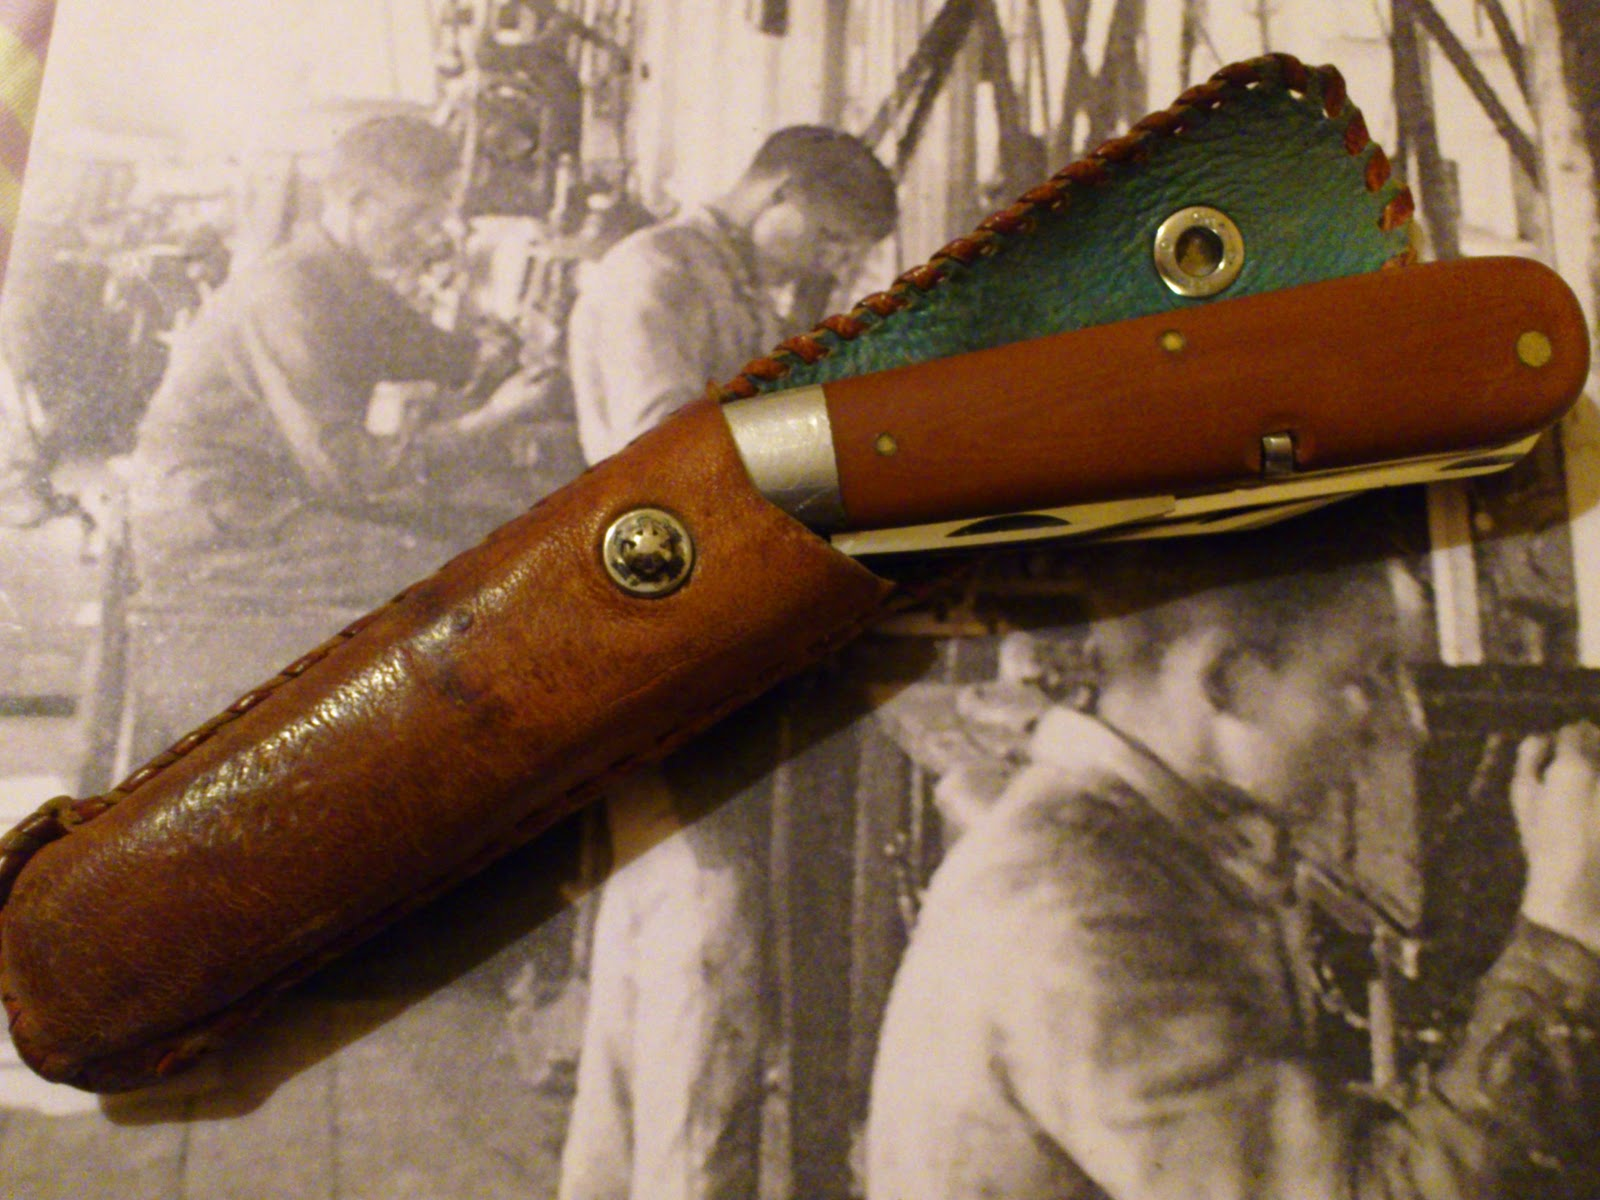 Mario S Swiss Army Knives Victorinox Soldier S Knife 1945